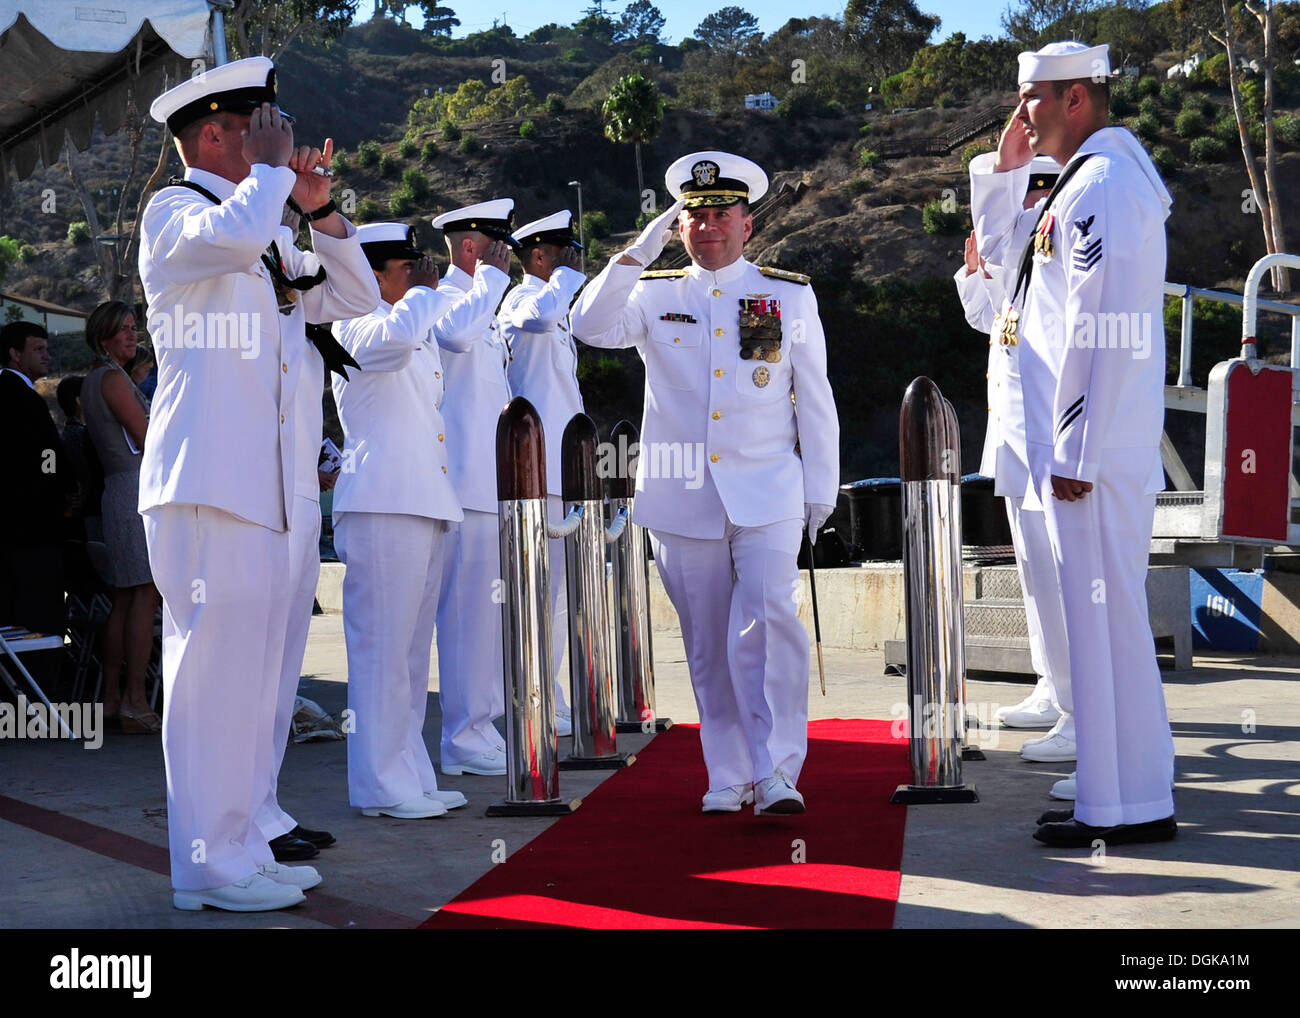 Vice Adm. Kenneth E. Floyd, commander of U.S. 3rd Fleet, is rendered honors as he departs the Naval Mine and Anti-Submarine Warfare Command change of command ceremony. Floyd served as the presiding officer as Rear Adm. William Merz assumed command from Re - Stock Image